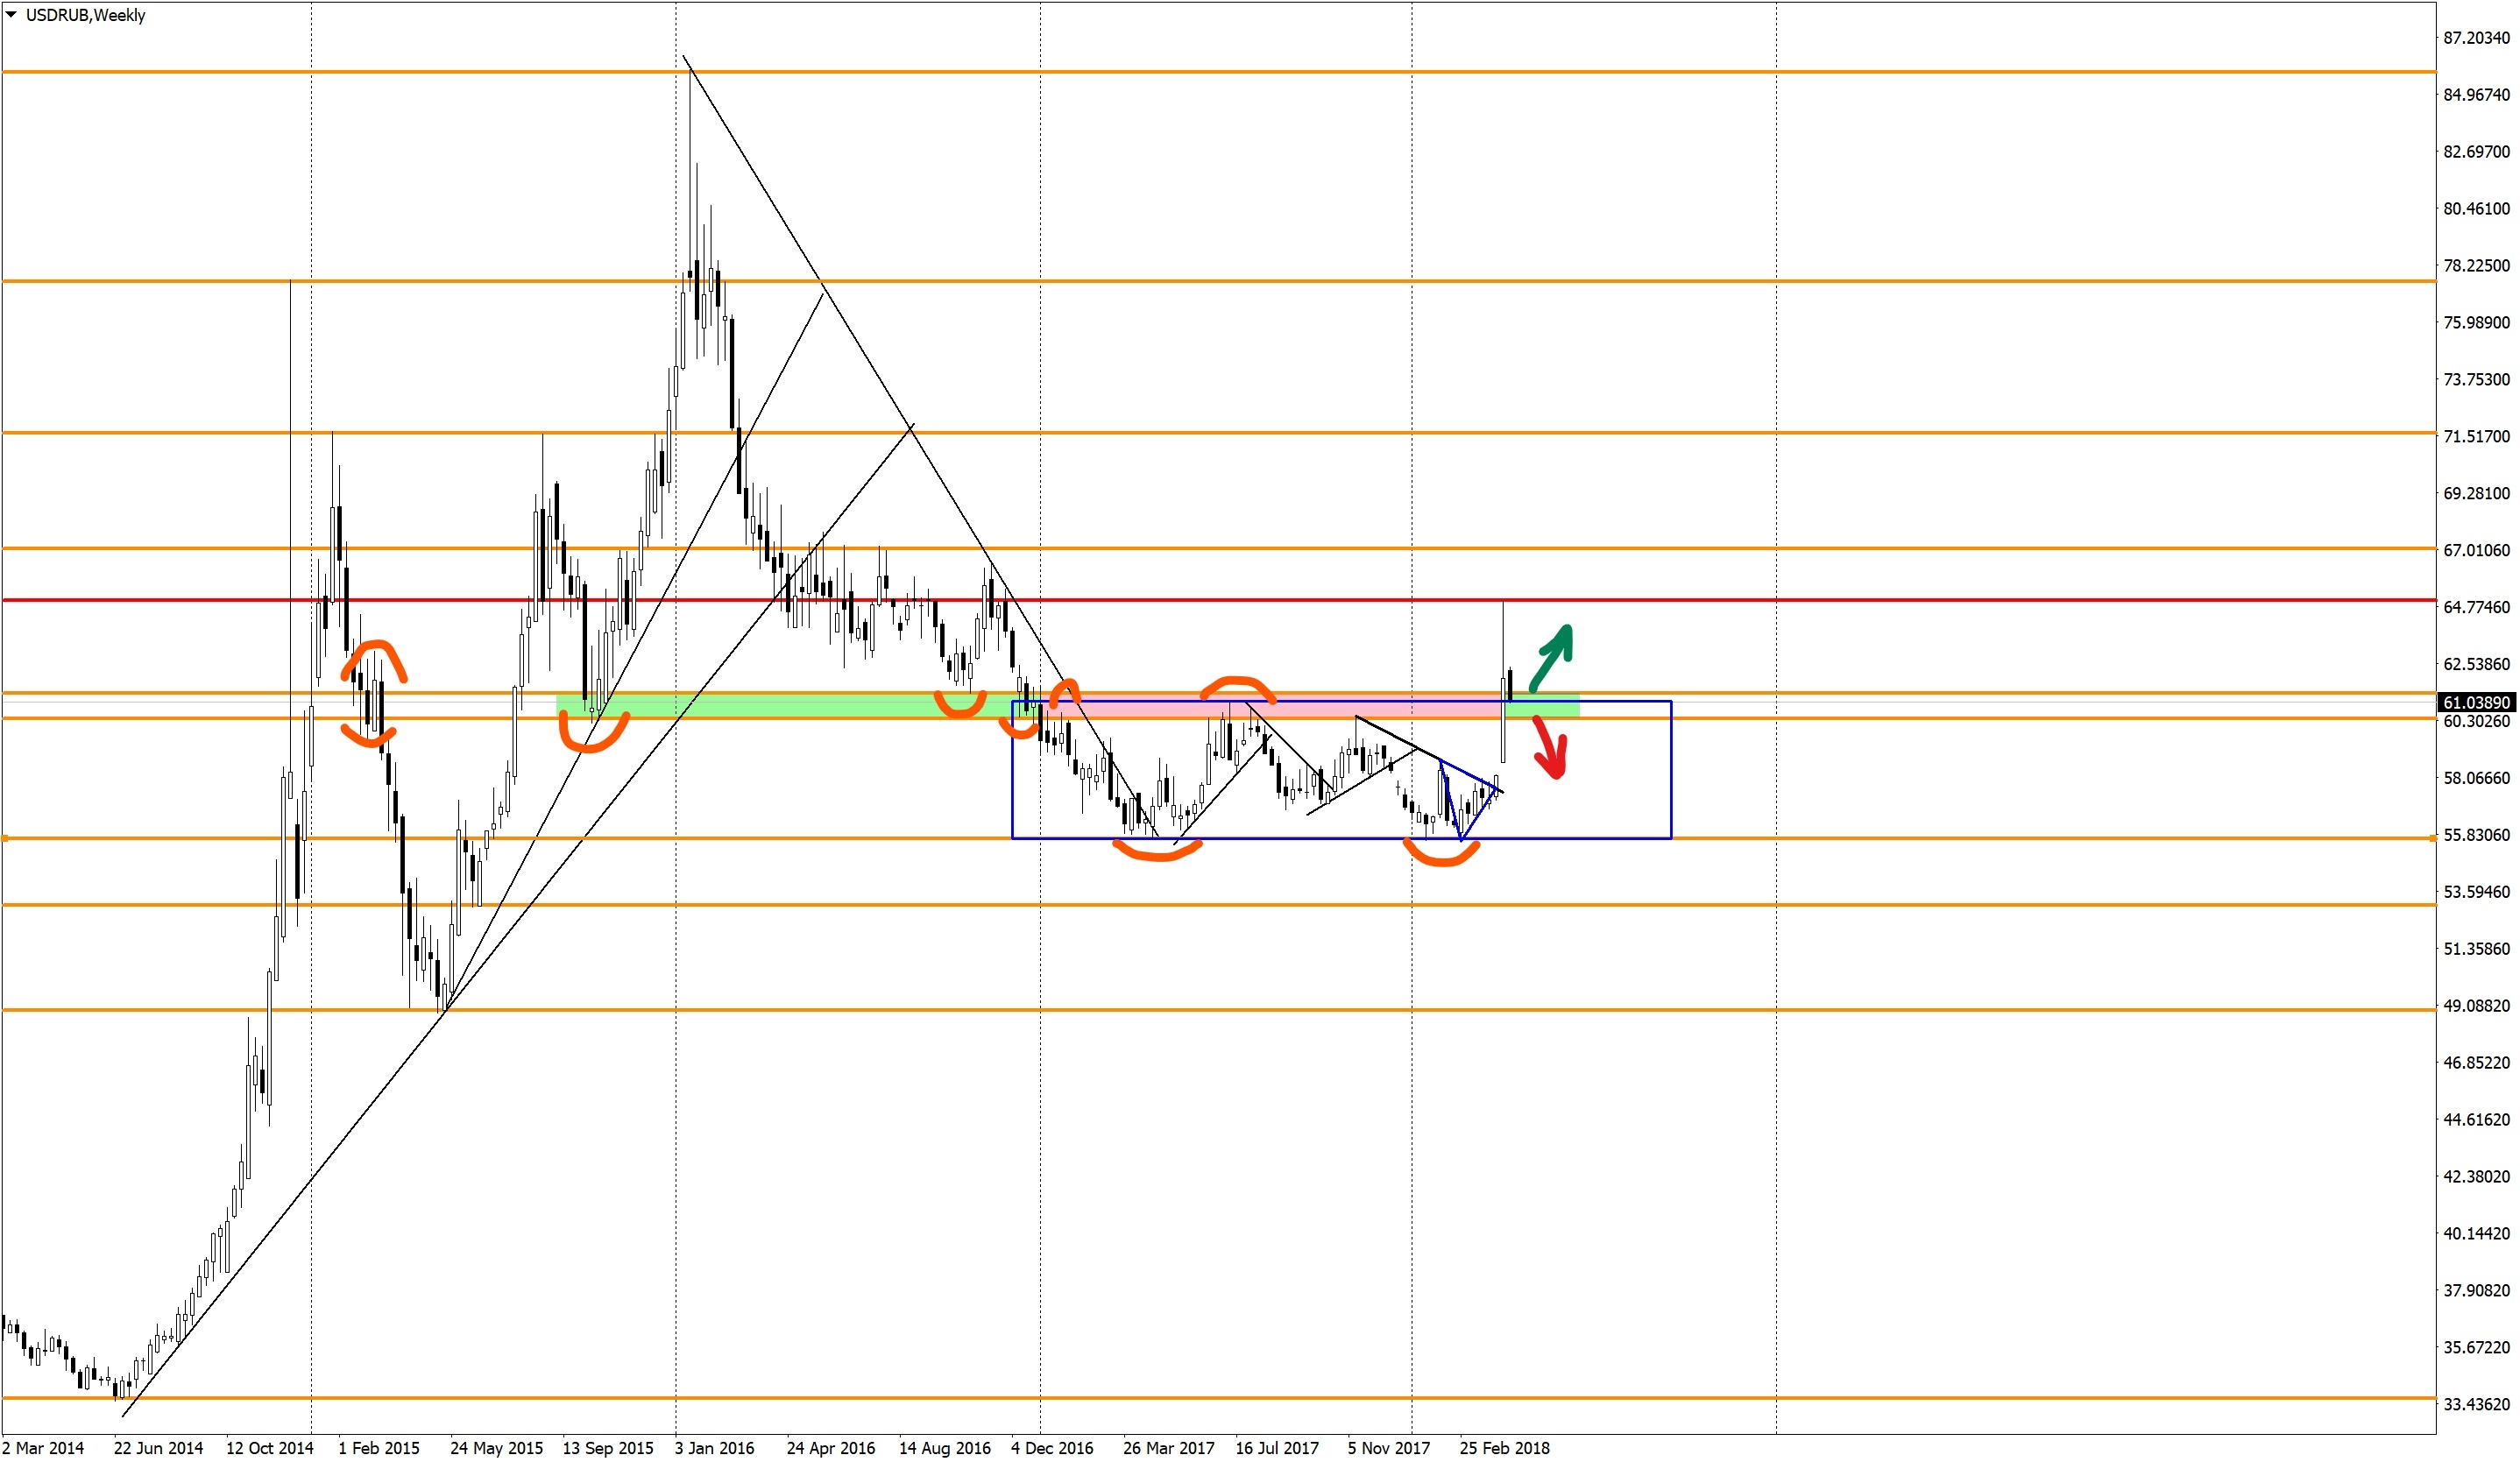 Technical analysis of the ruble USDRUB